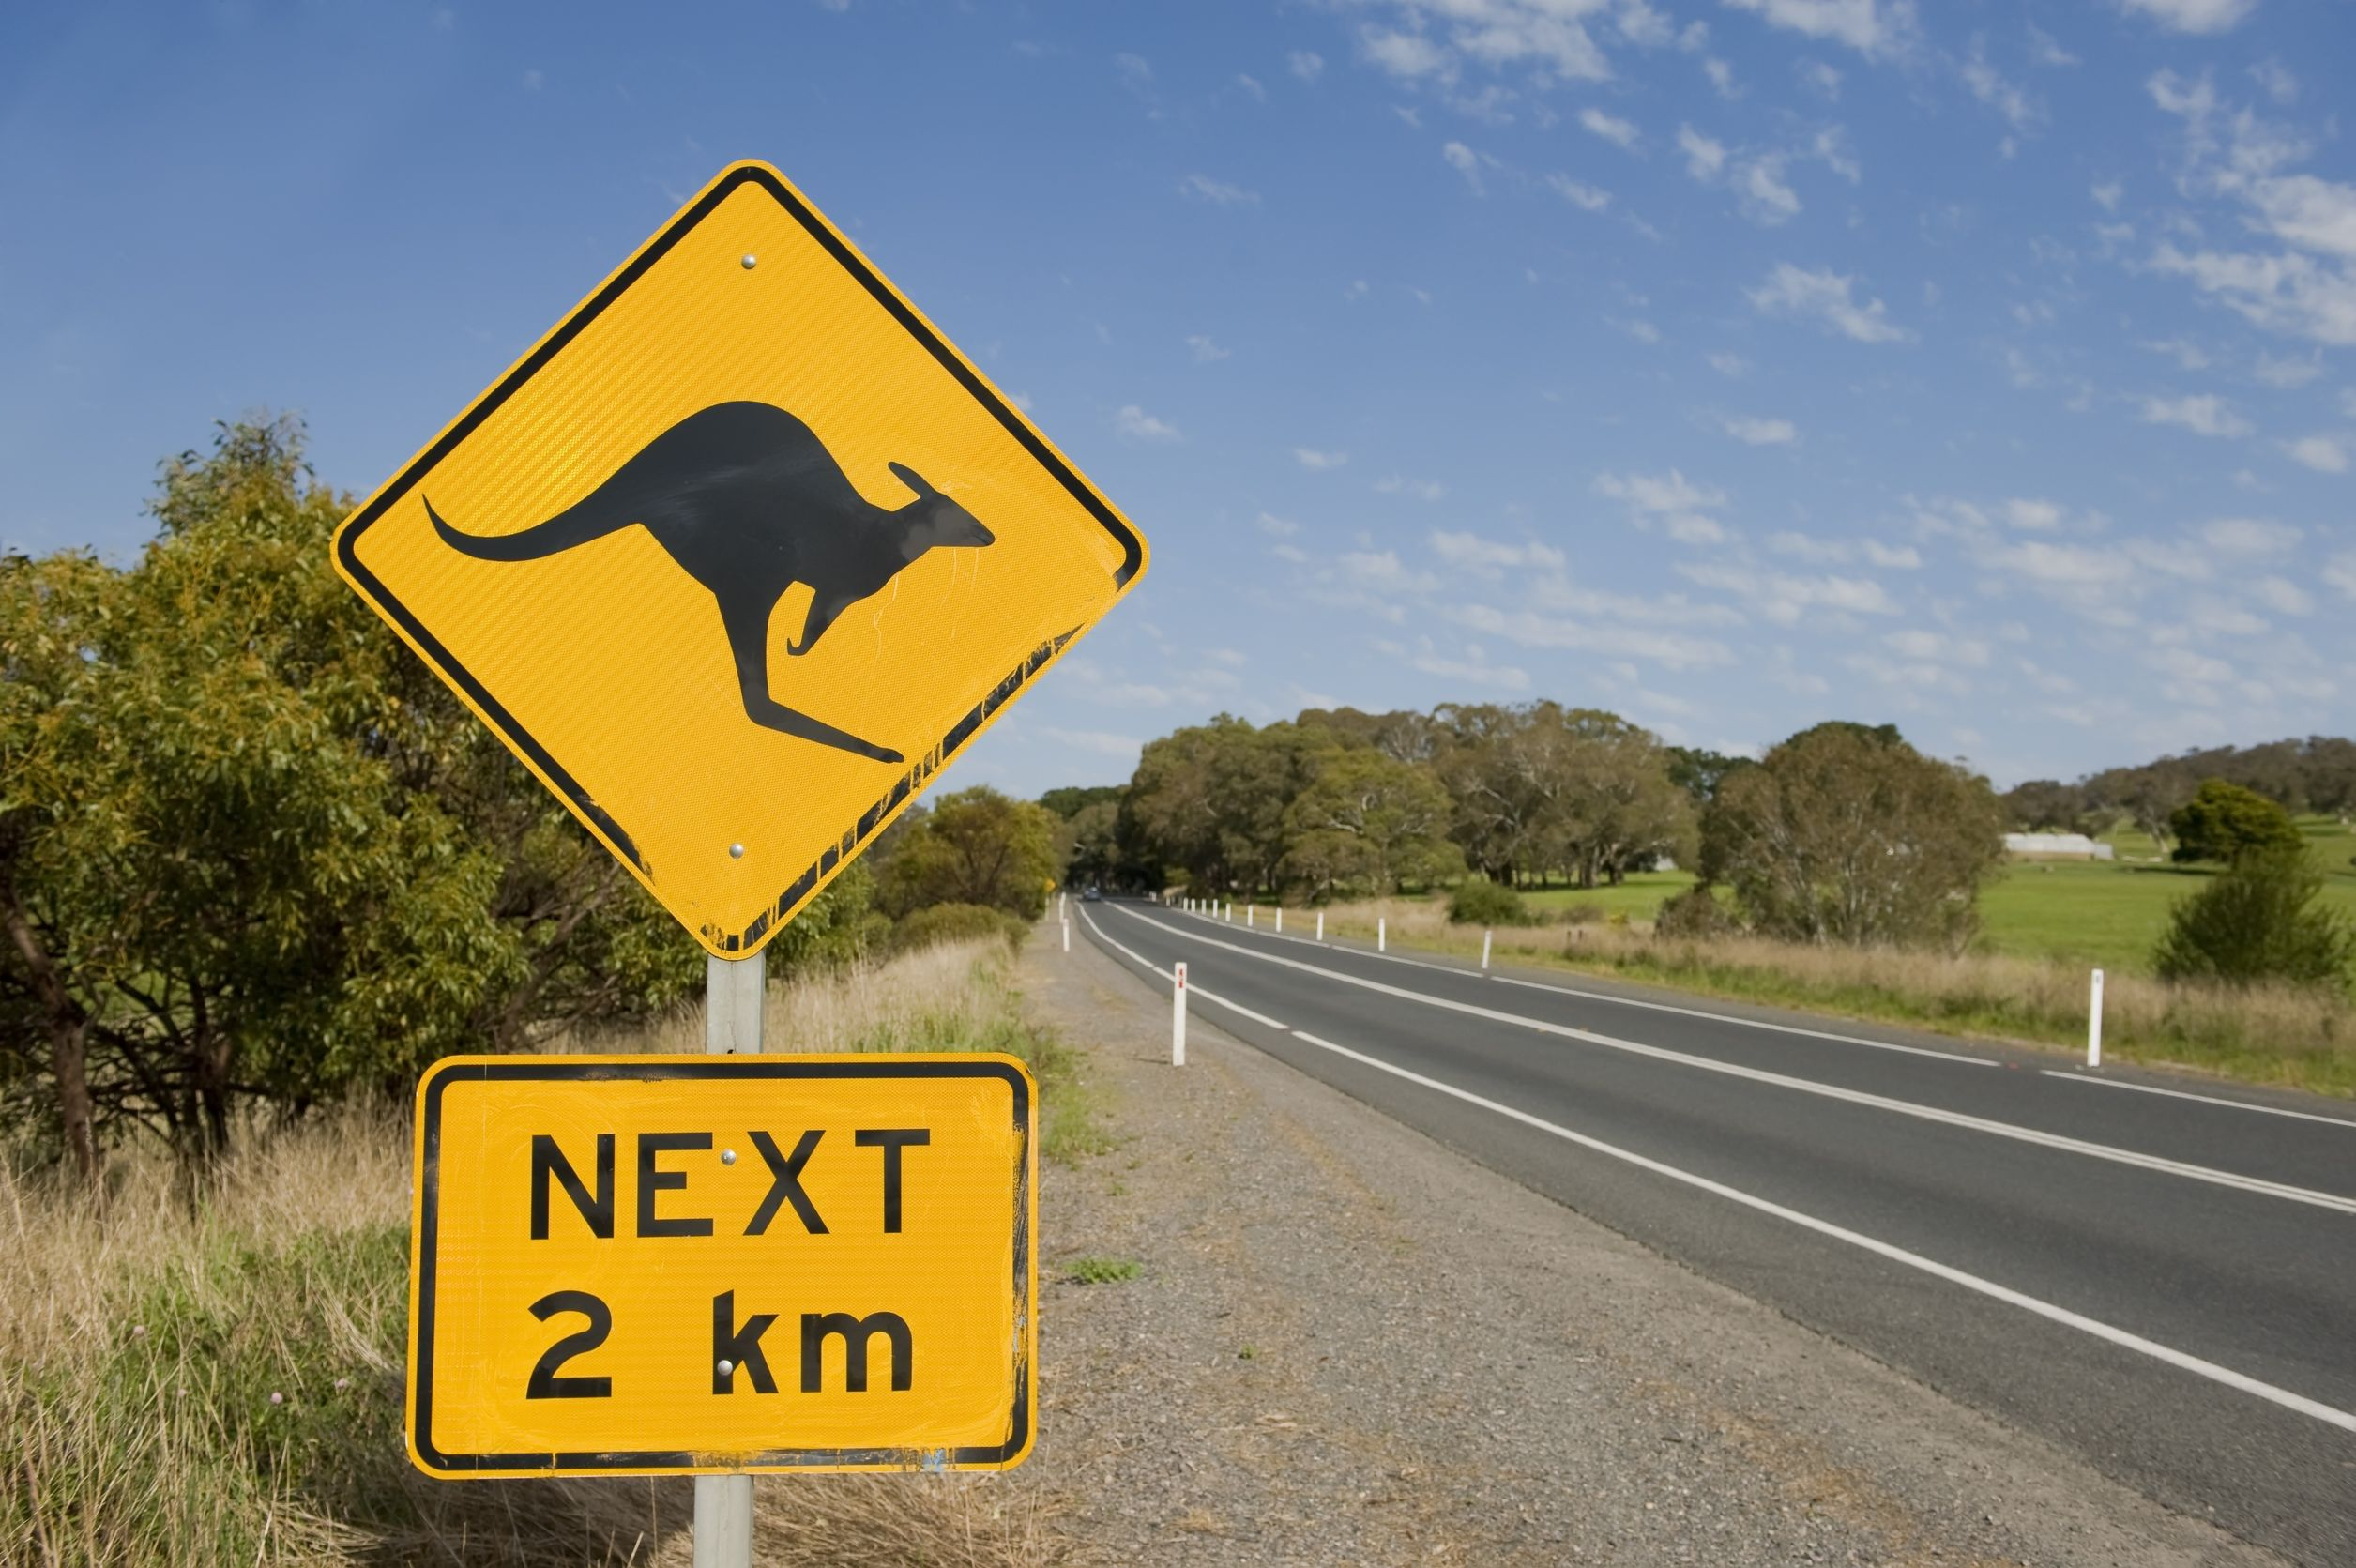 kangaroo-road-sign-australia